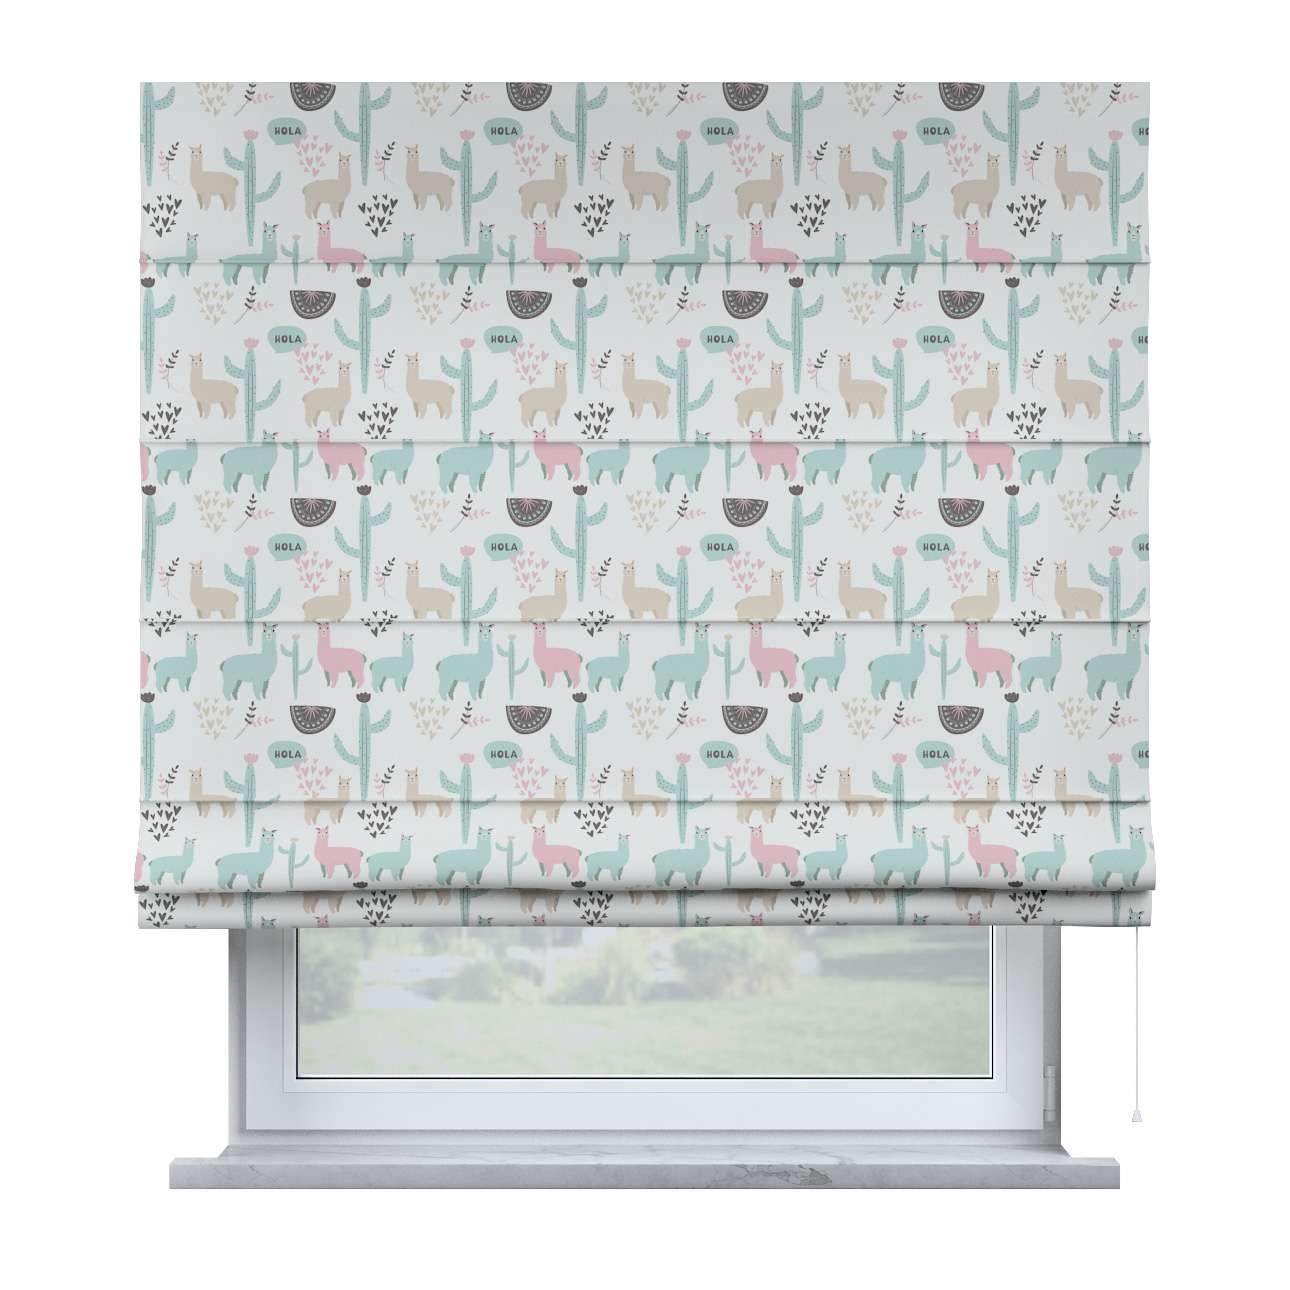 Billie roman blind in collection Magic Collection, fabric: 500-01